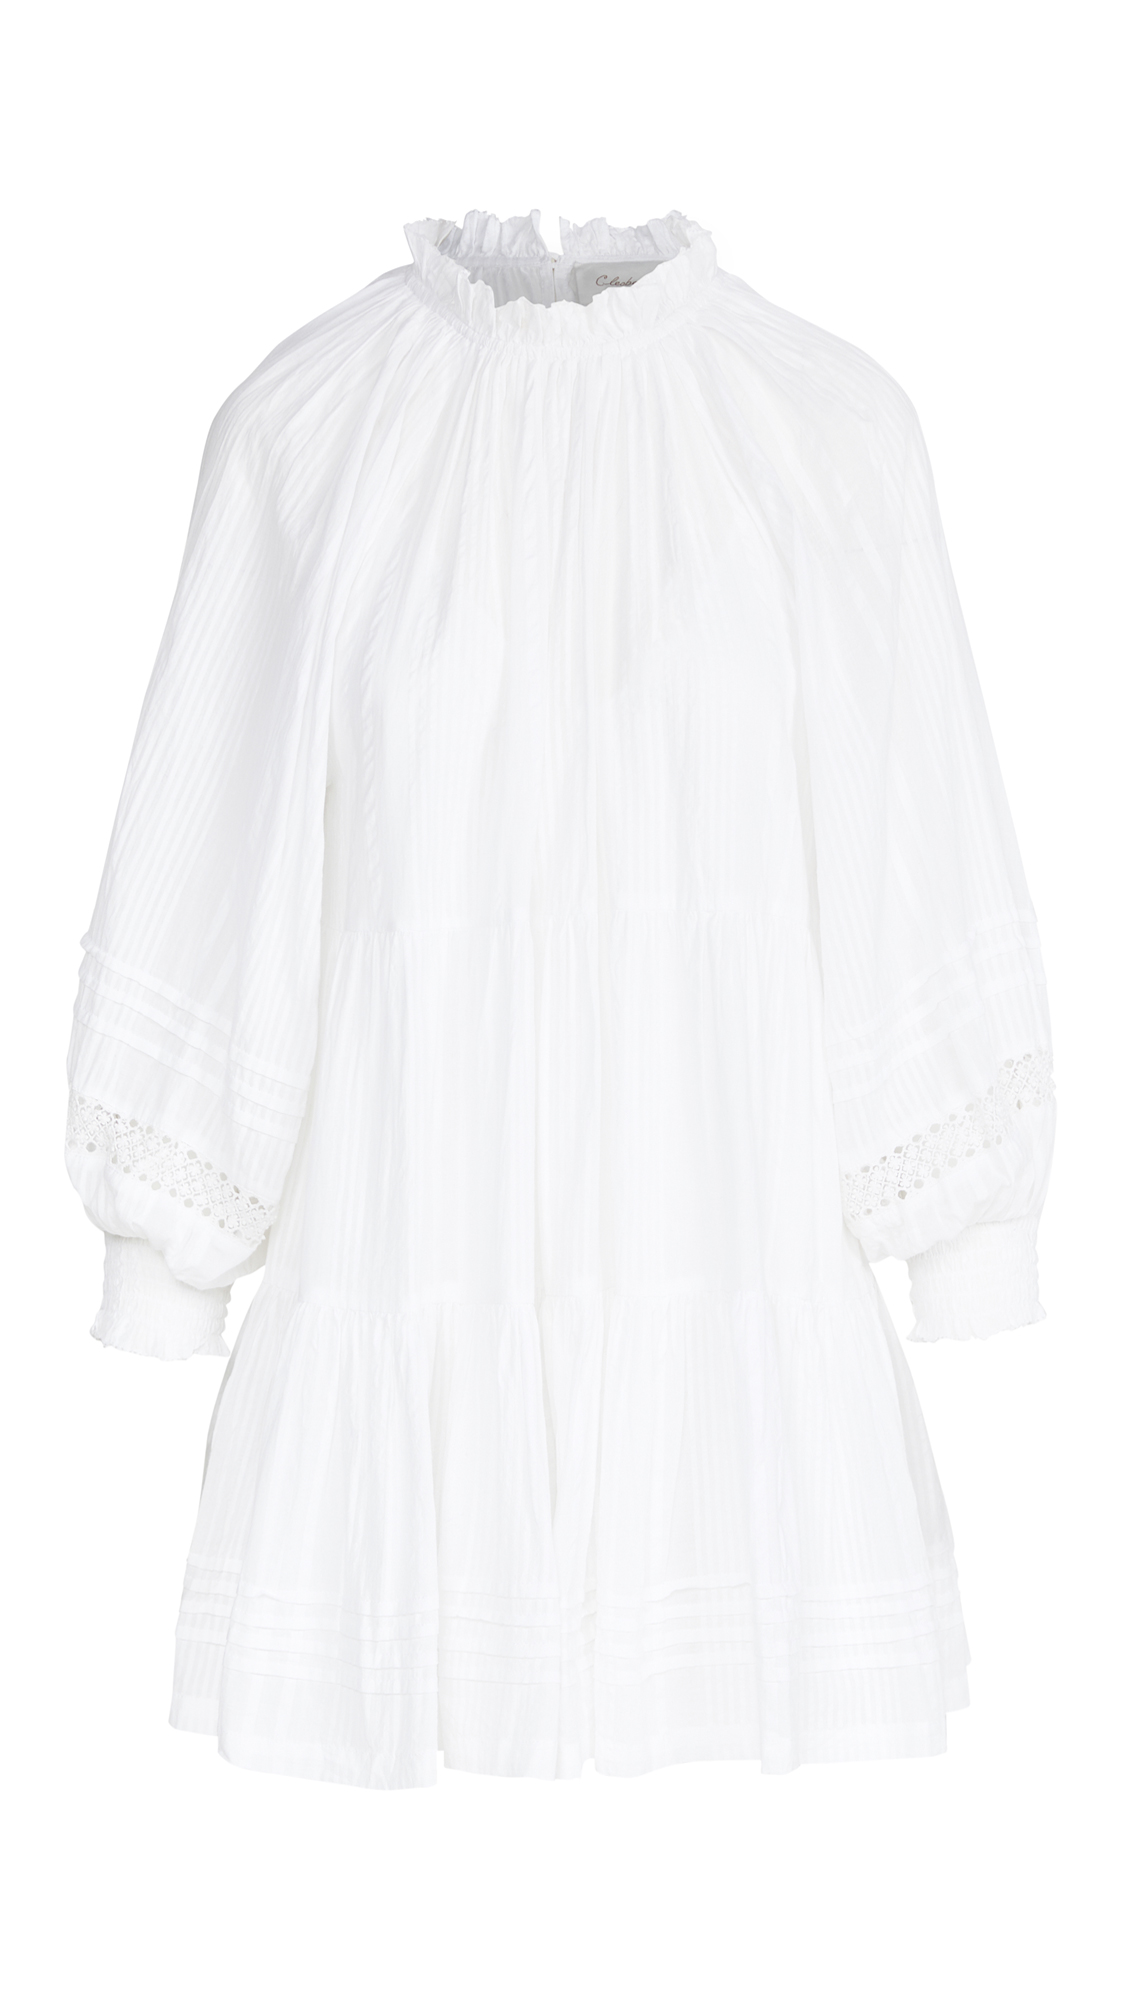 Cleobella Ethereal Mini Dress